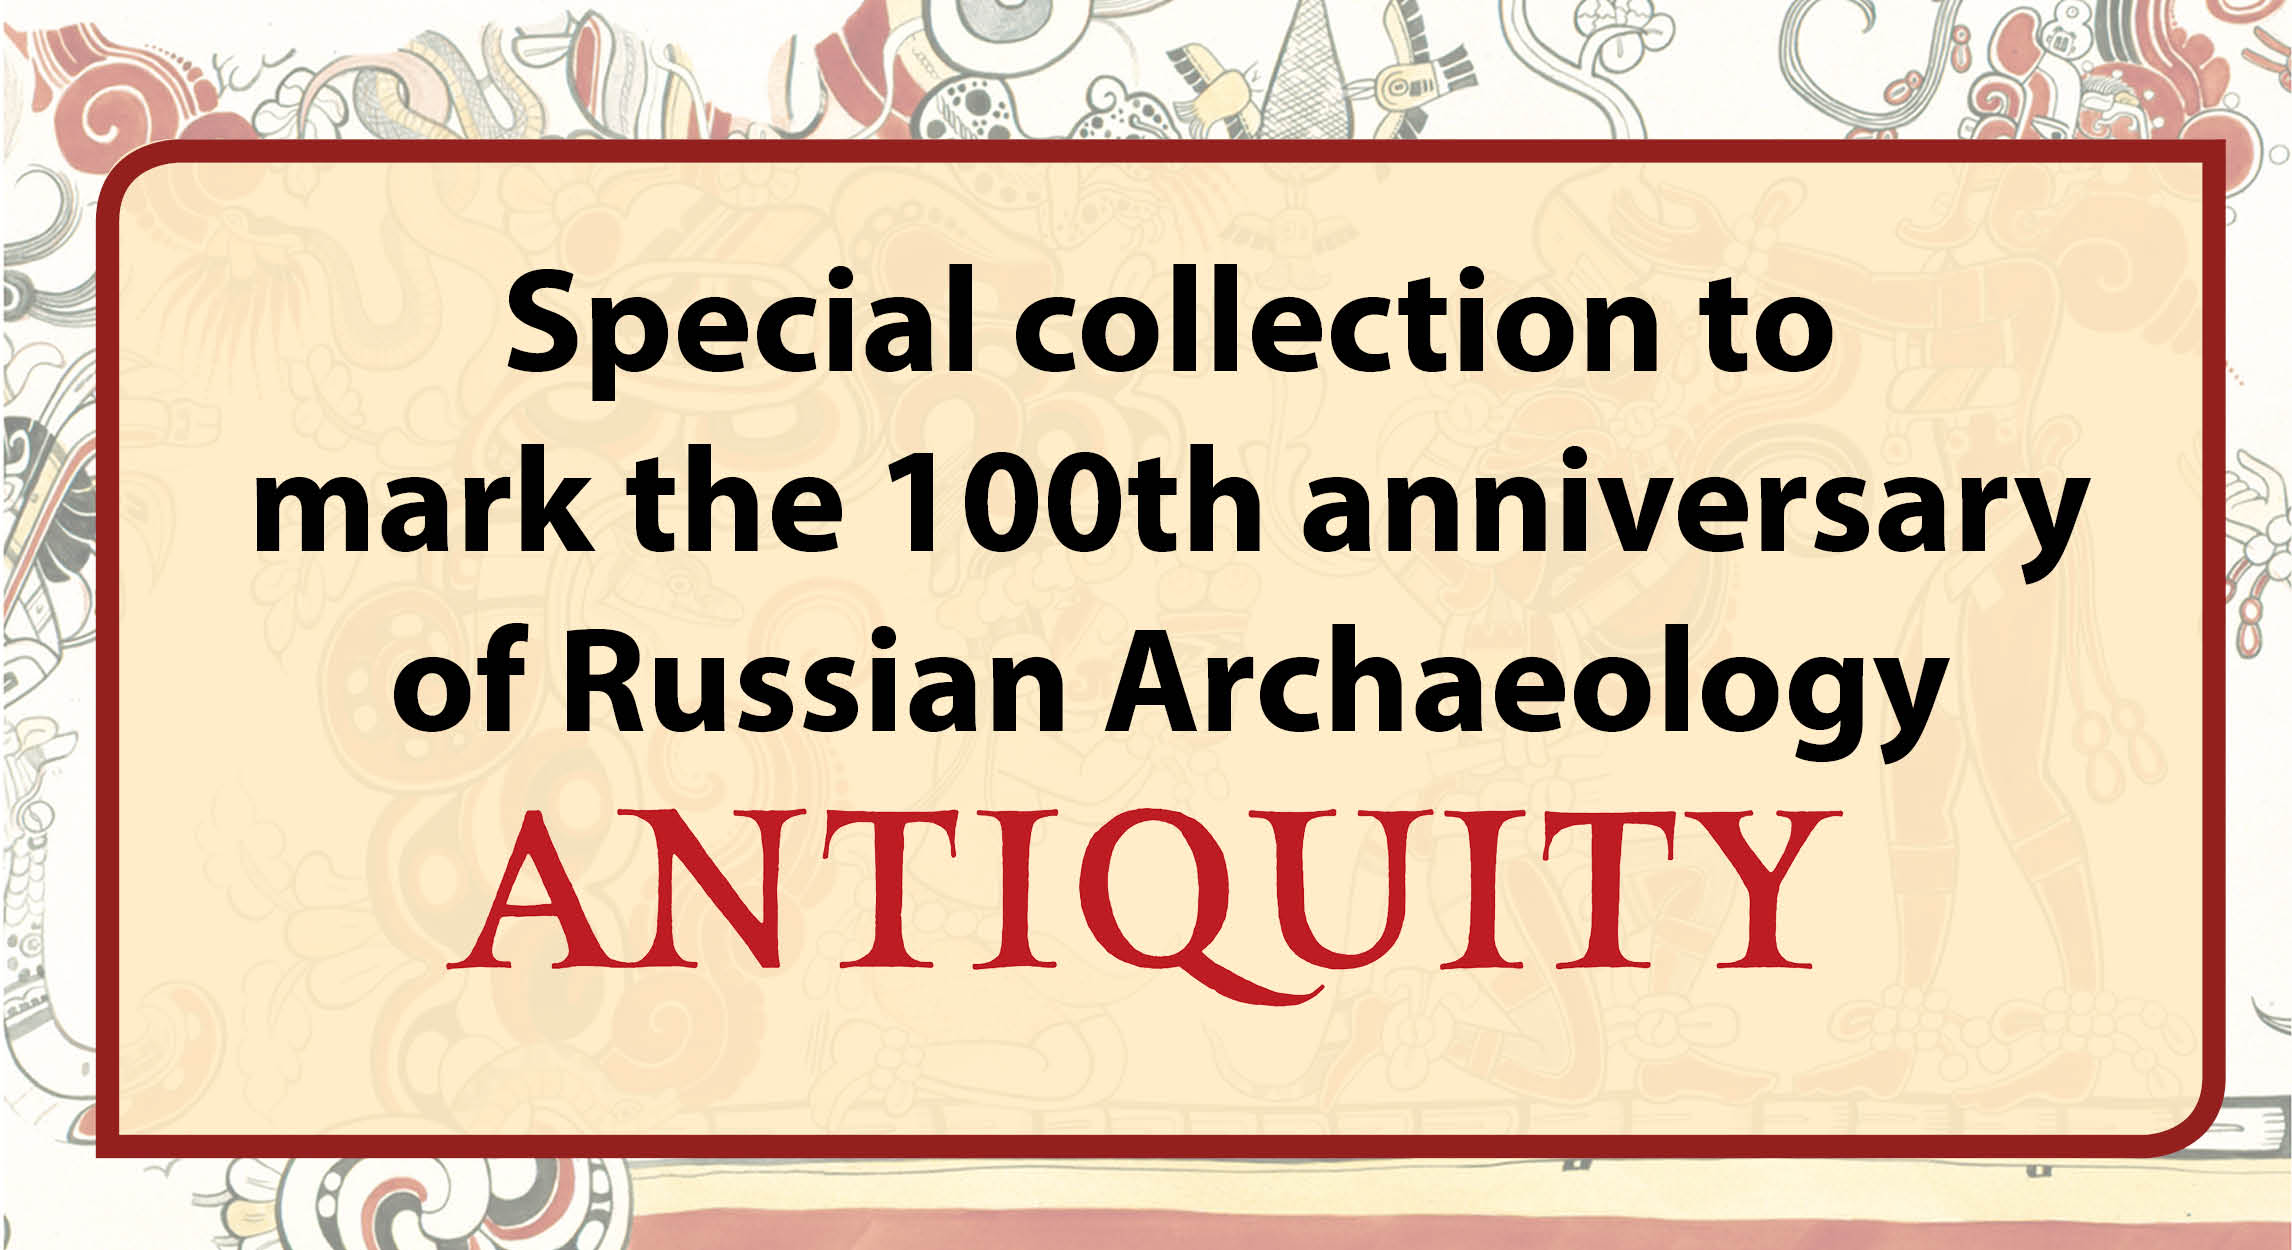 100th anniversary of Russian Archaeology